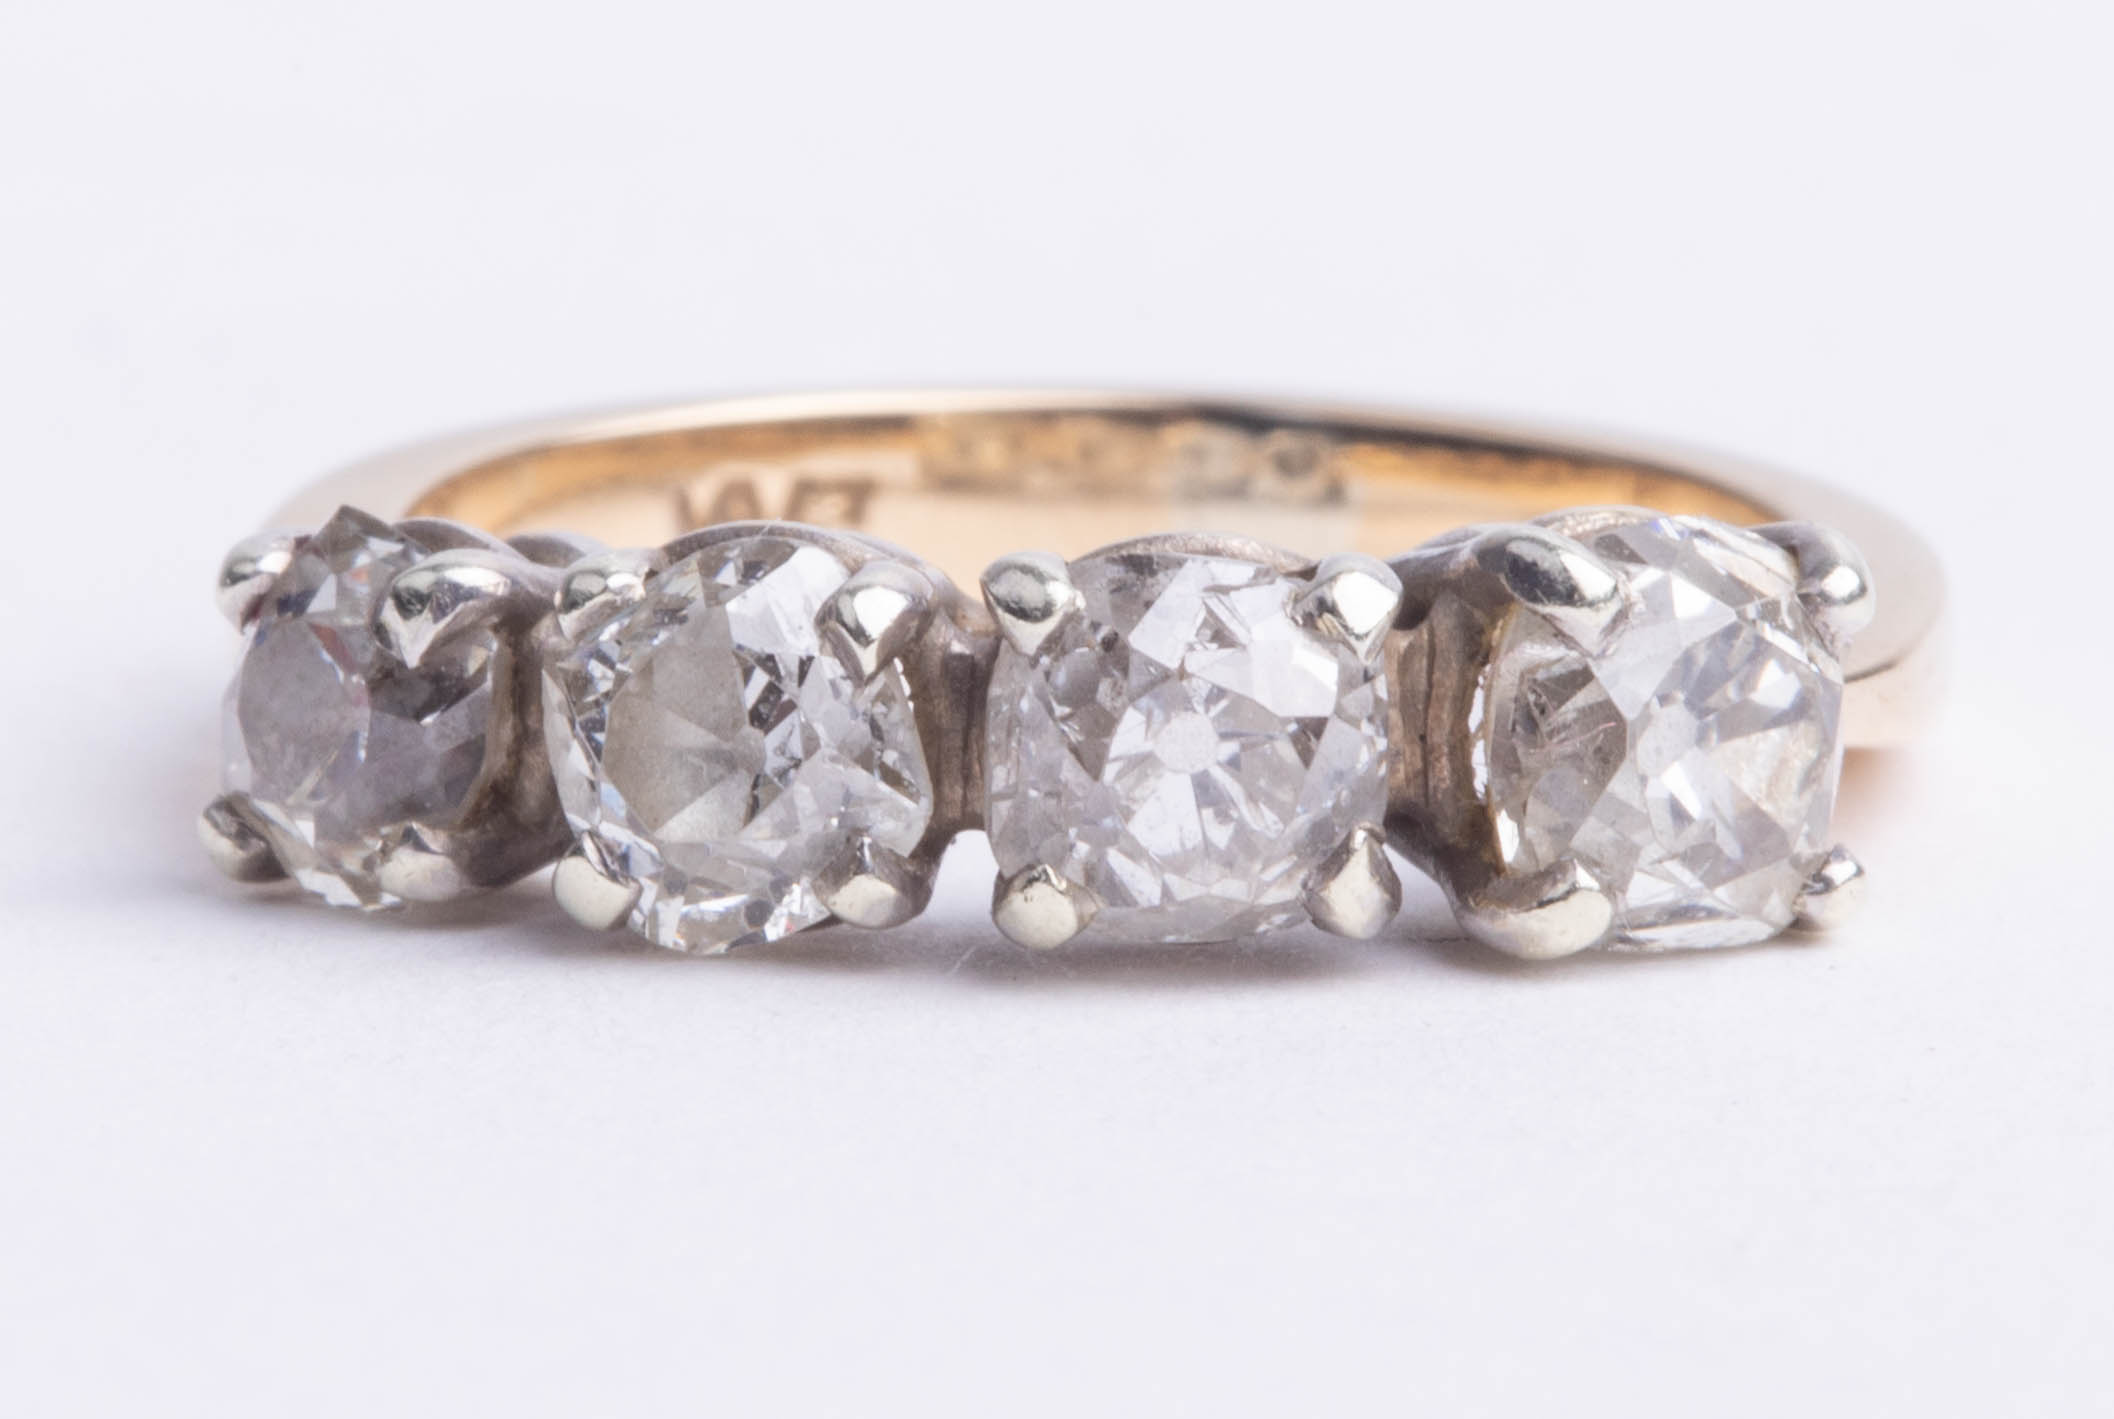 Lot 018 - An 18ct four stone diamond ring, set with old cut round diamonds, size M.